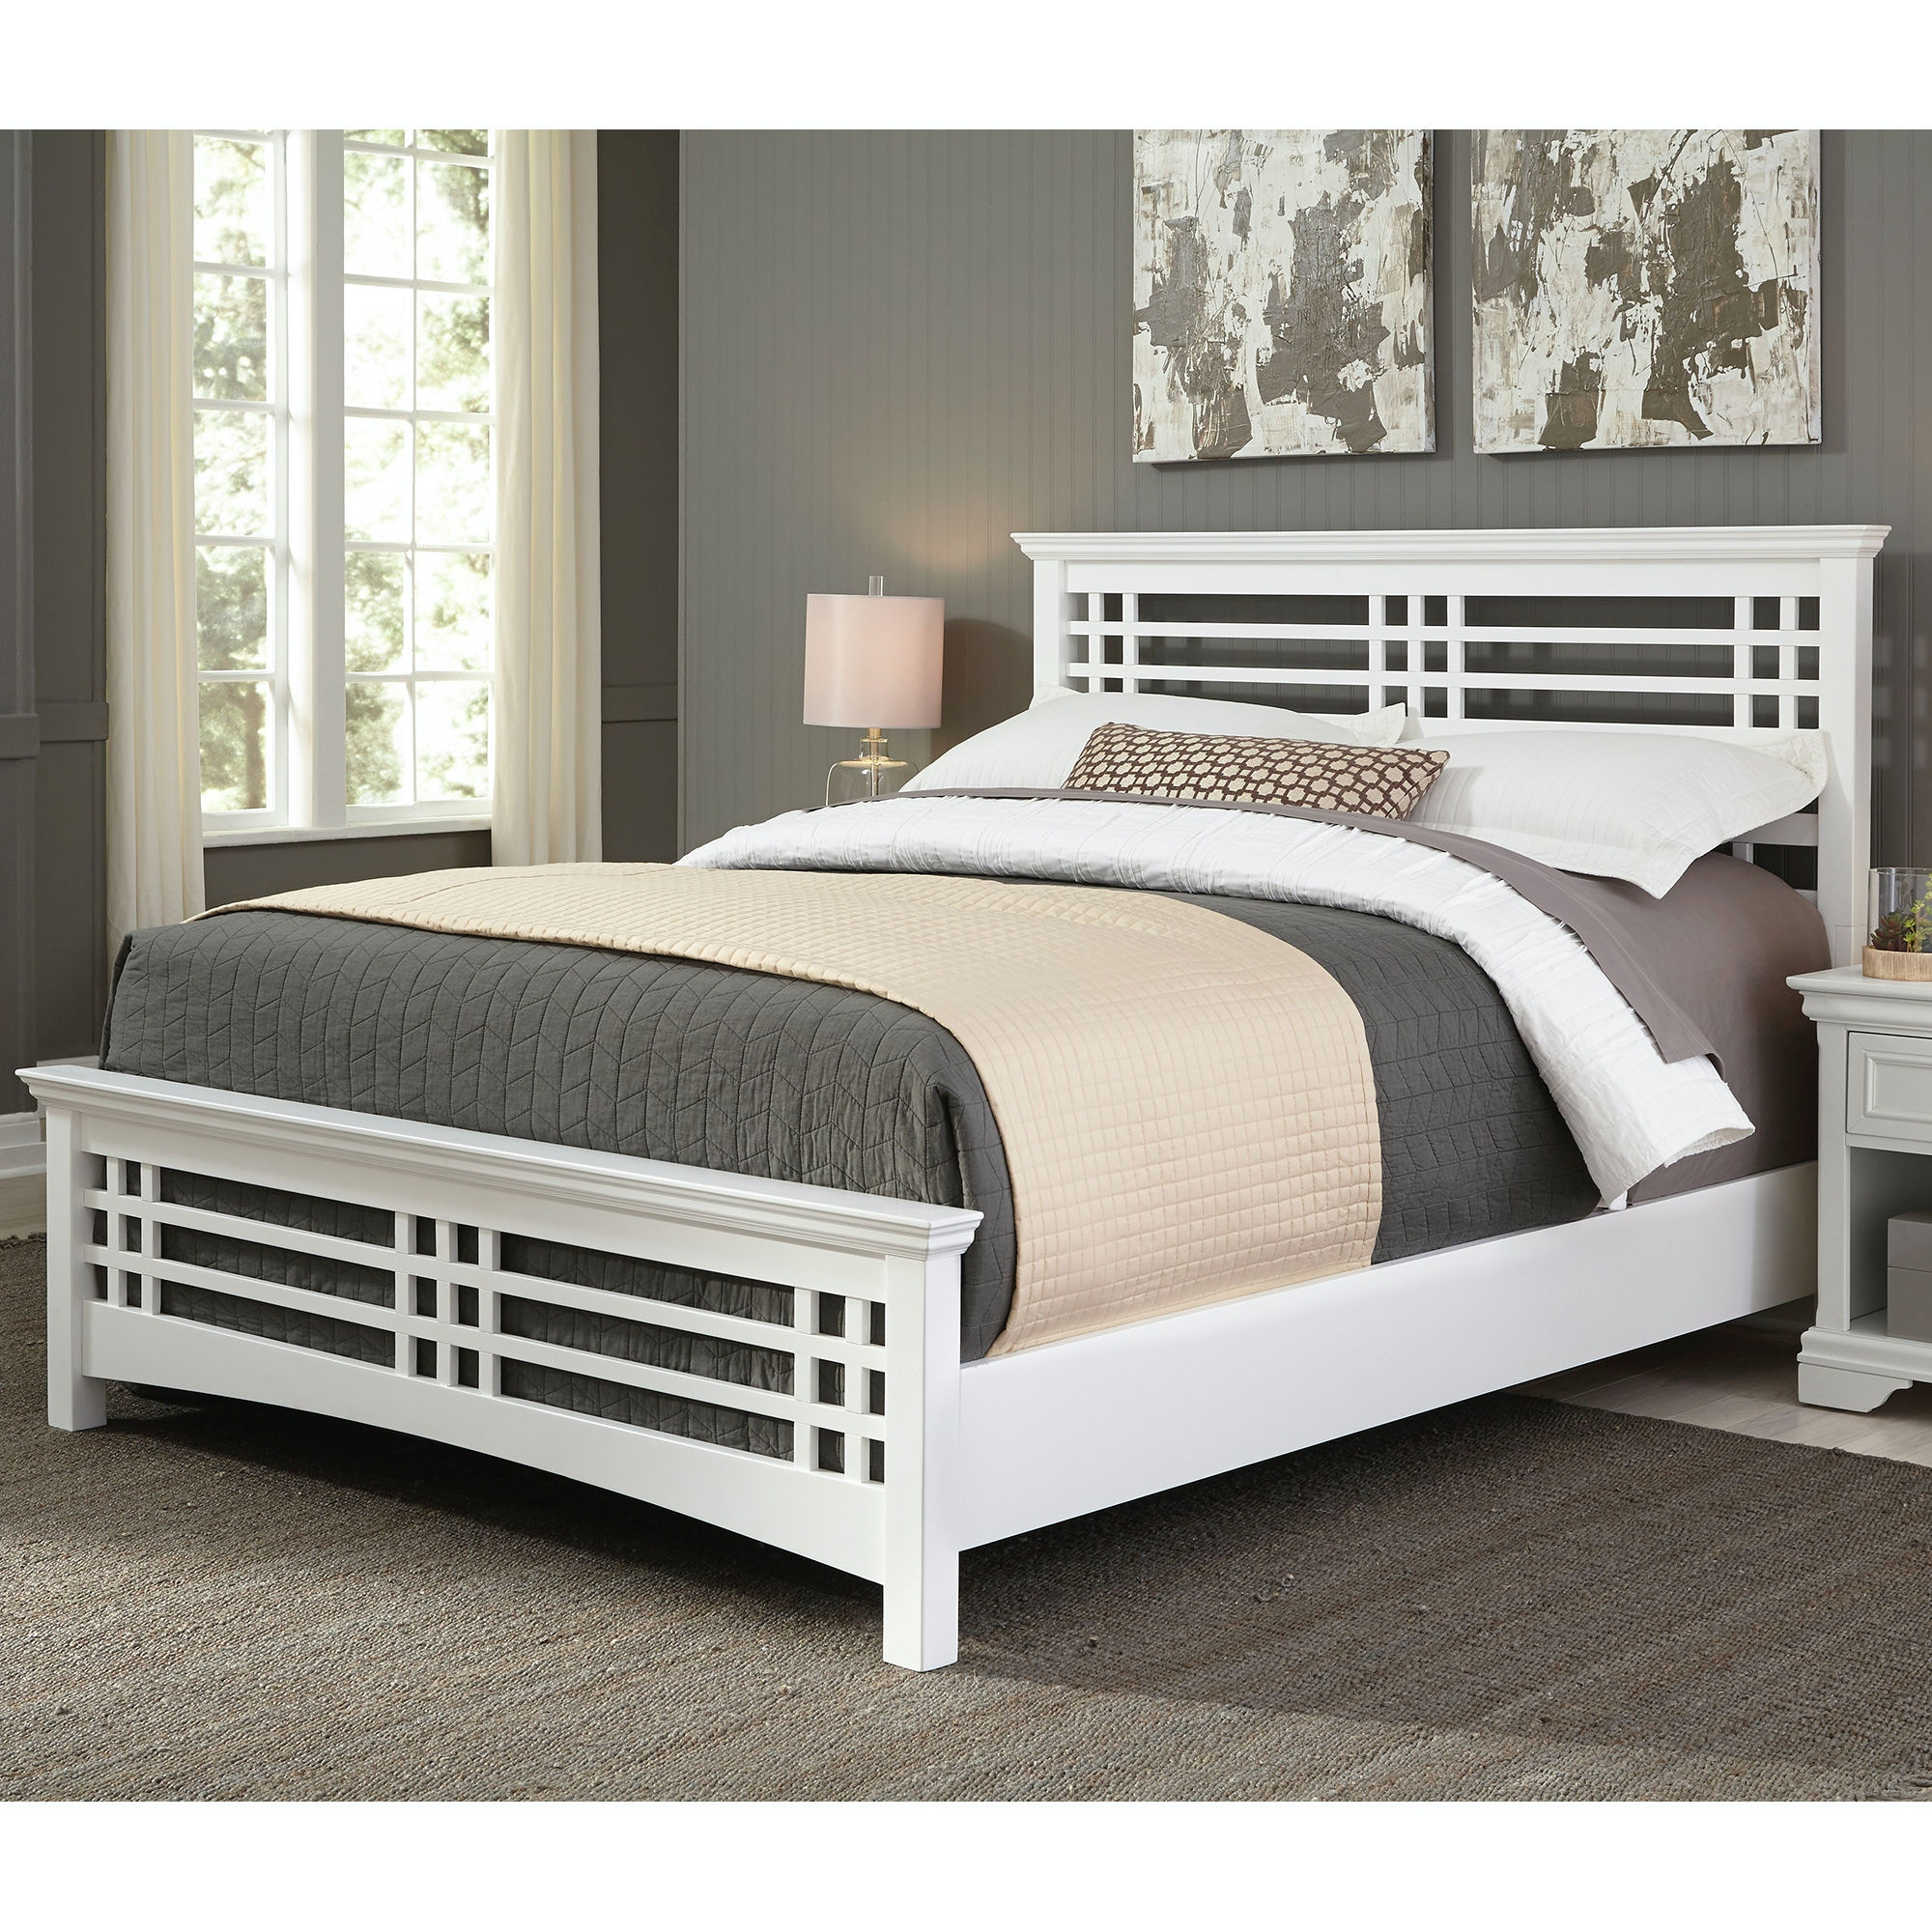 Fashion Bed Group Bedroom Avery Complete Bed With Wood Frame And